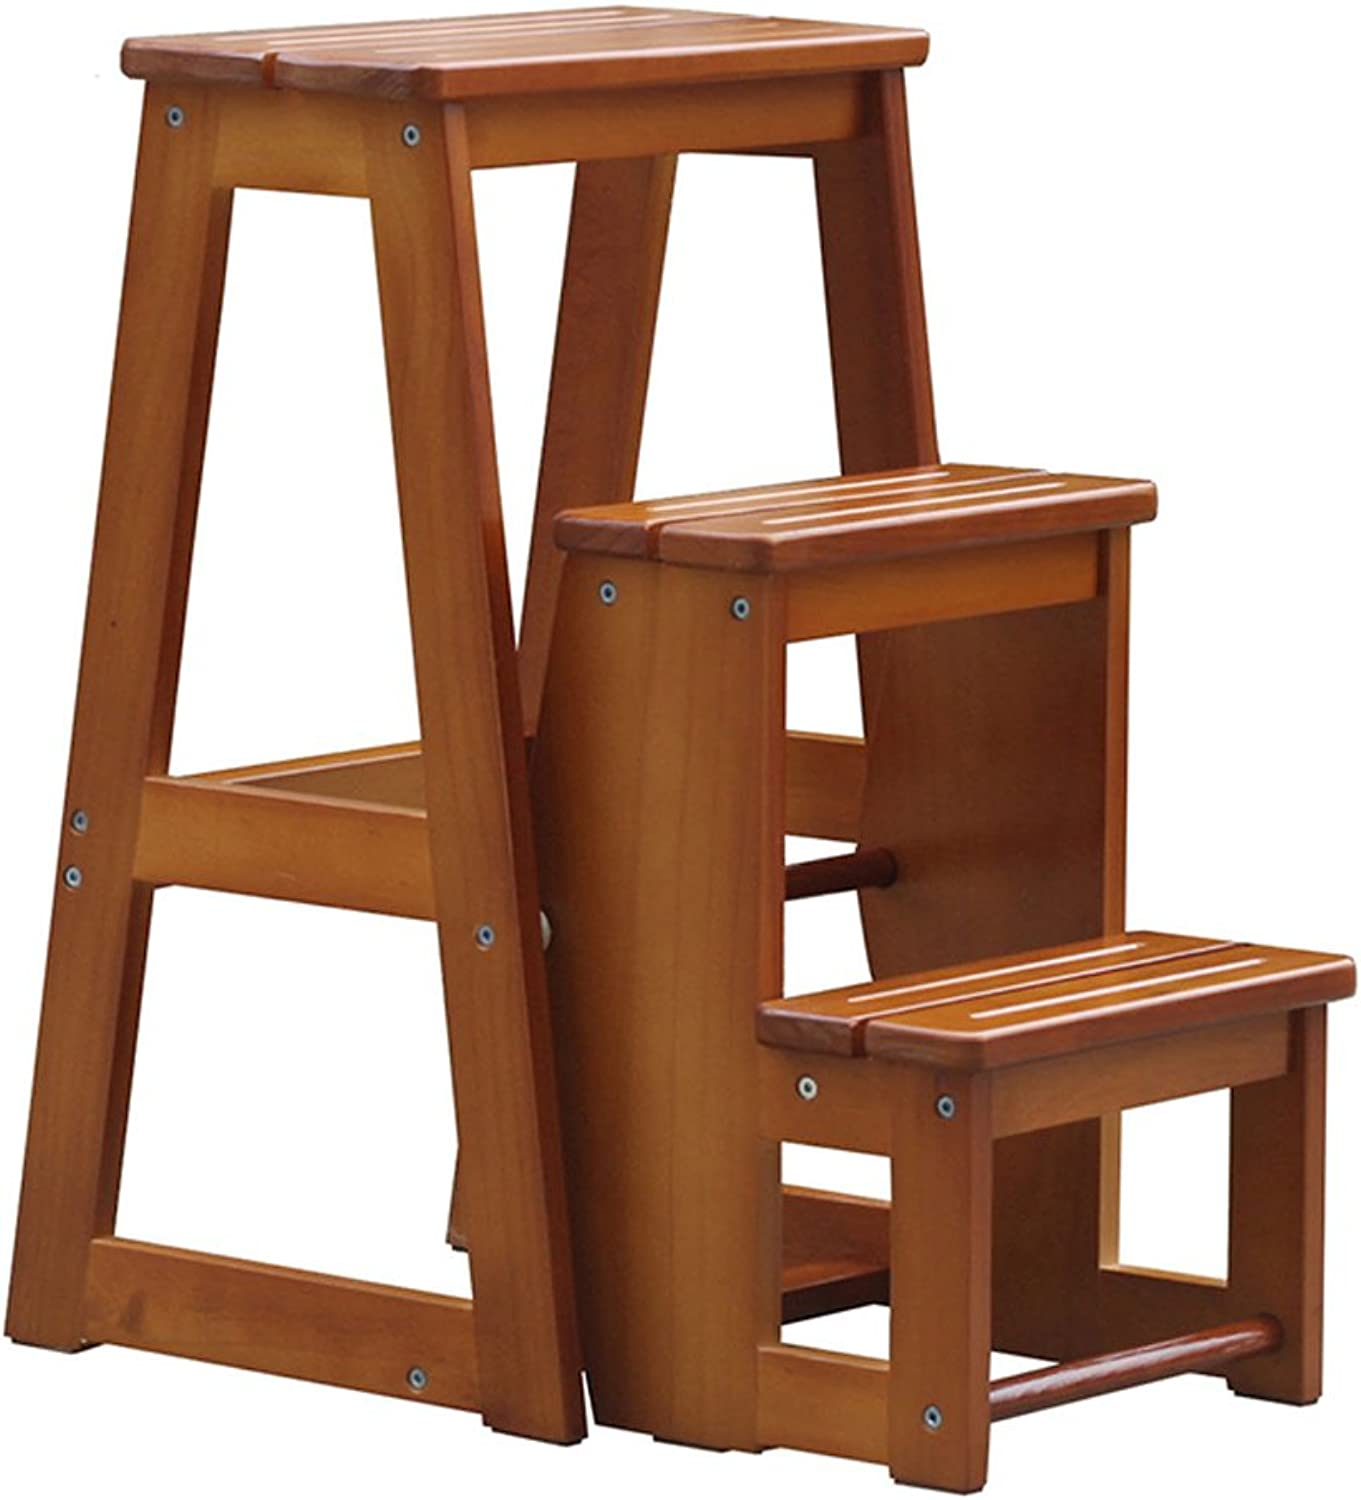 Solid Wood Three-Story Stair Stool Home Folding Ladder Chair Dual Indoor Ladder Climbing Stool Stool Furniture (color   Brown, Size   2835.564cm)